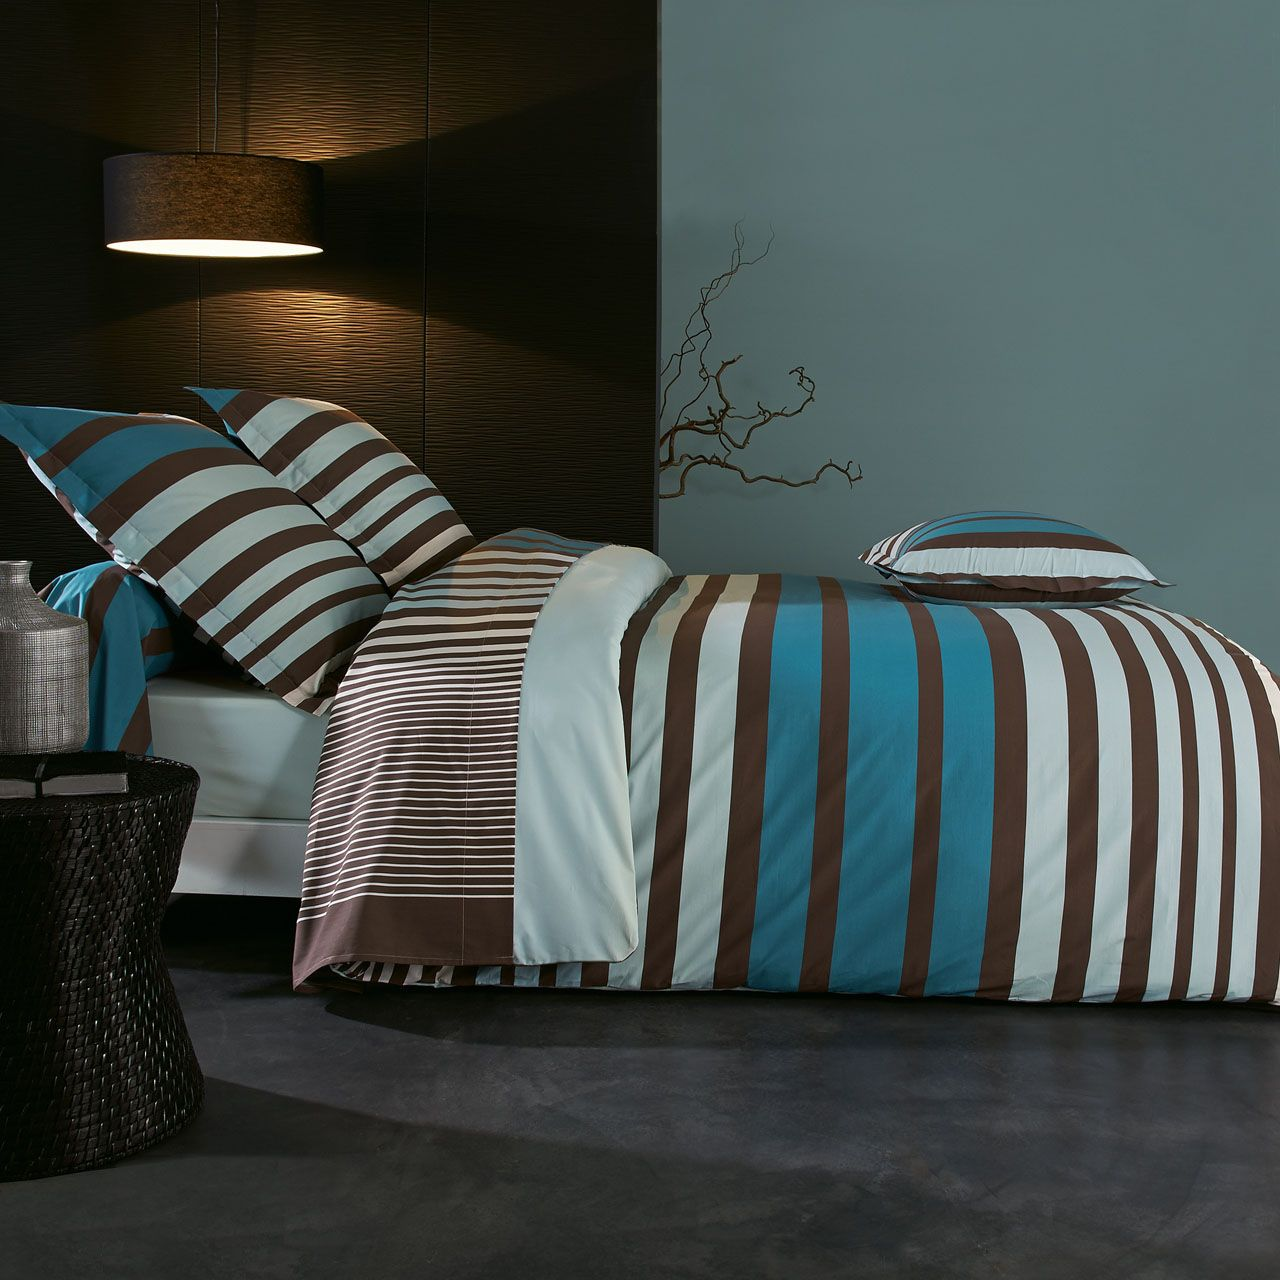 housse de couette percale stripe bleu 260x240 tradilinge. Black Bedroom Furniture Sets. Home Design Ideas